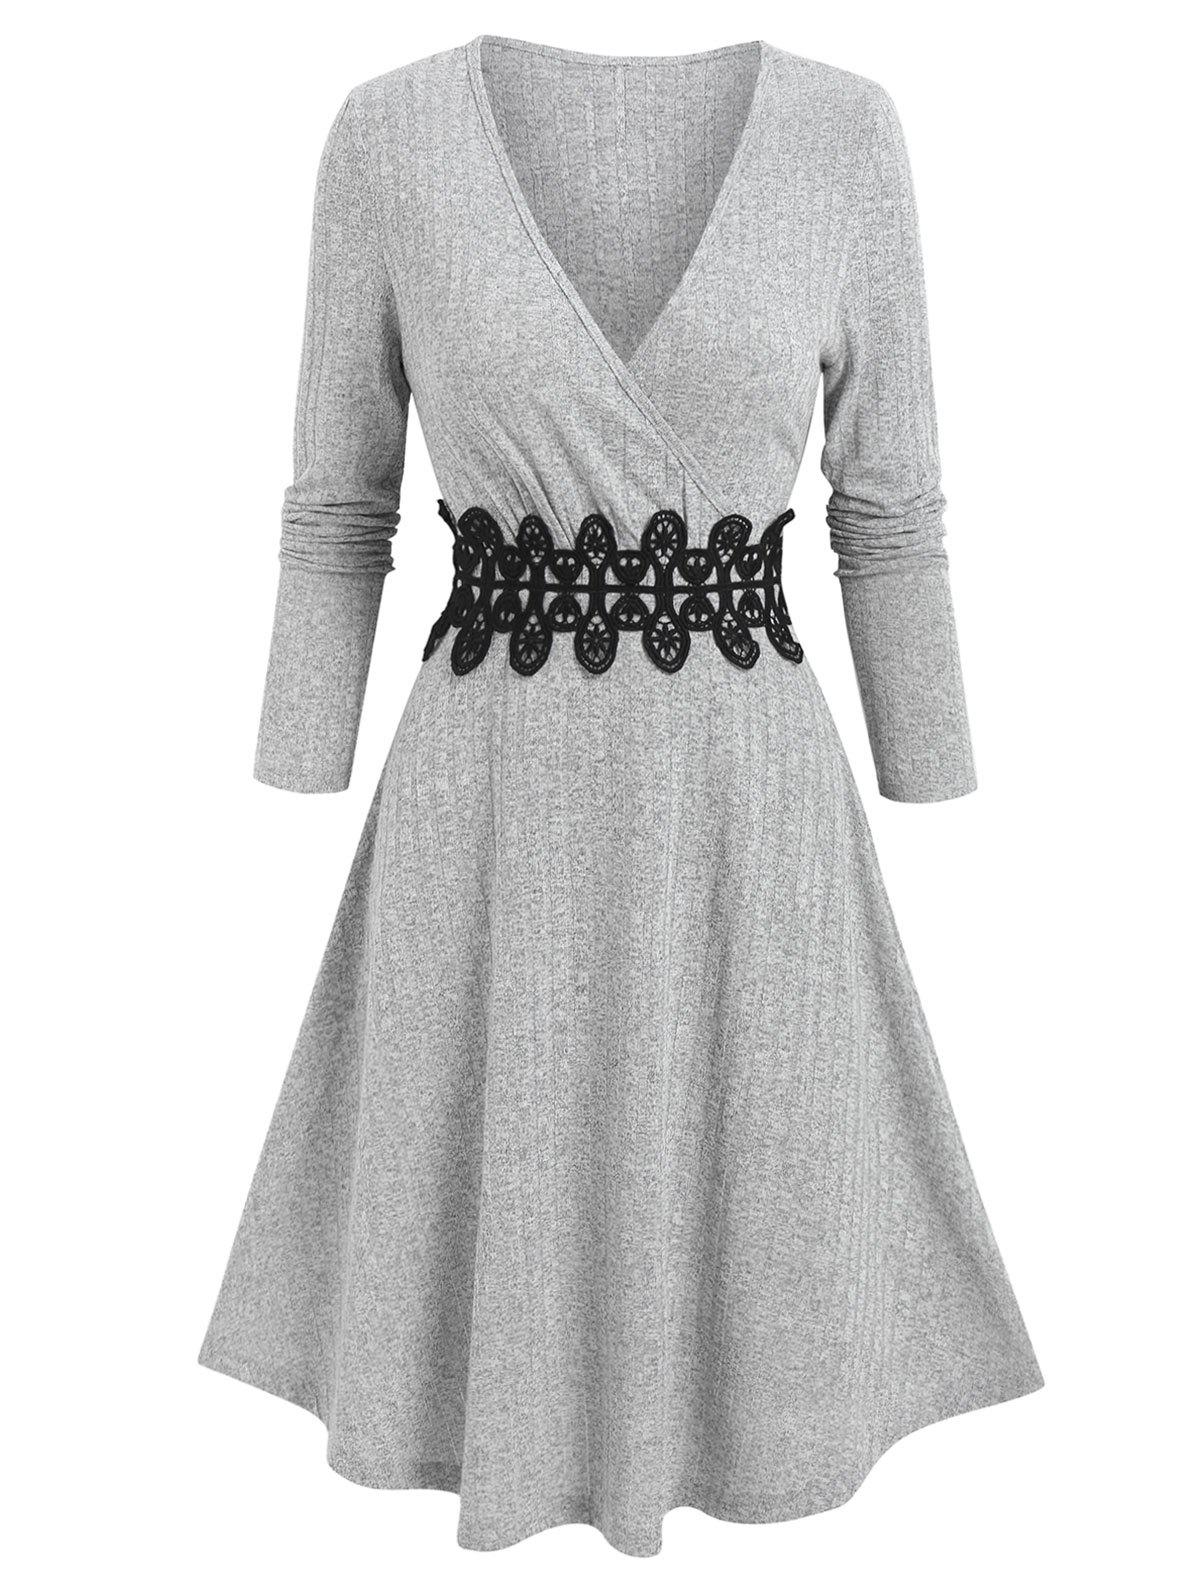 Waist Applique Ribbed V Neck Wrap Dress - LIGHT GRAY 3XL